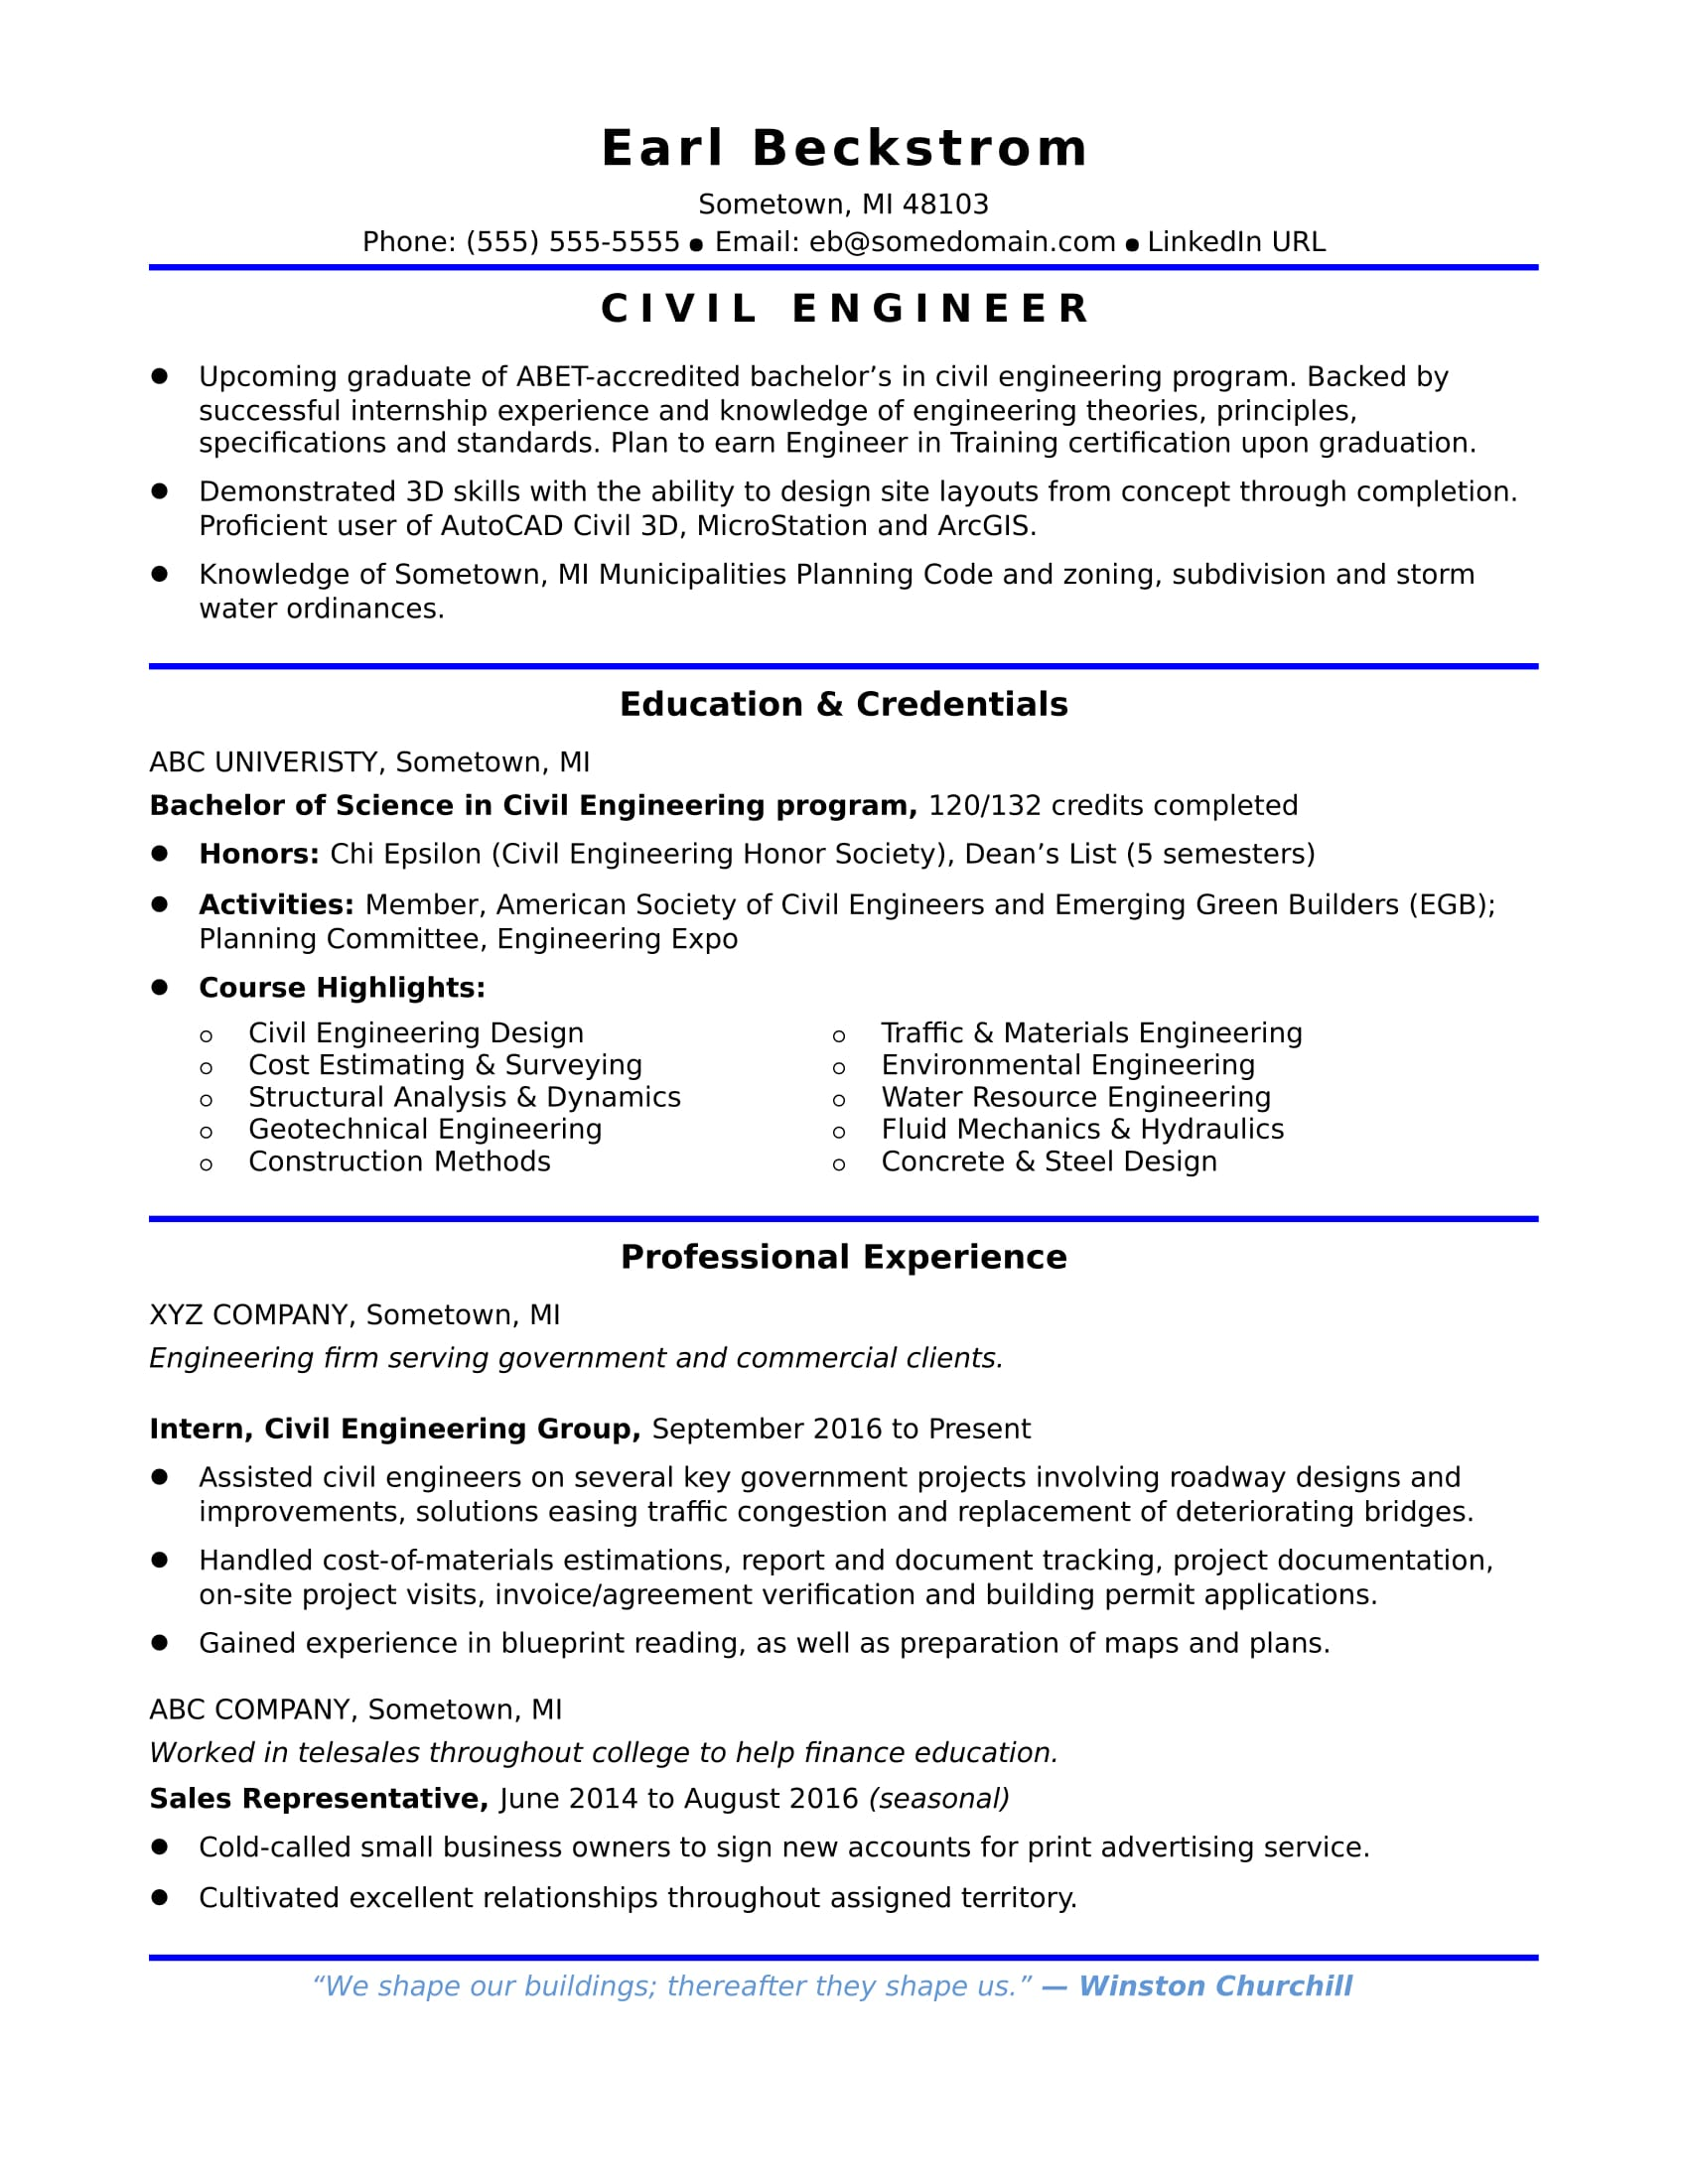 sample resume for mid level position - sample resume for an entry level civil engineer